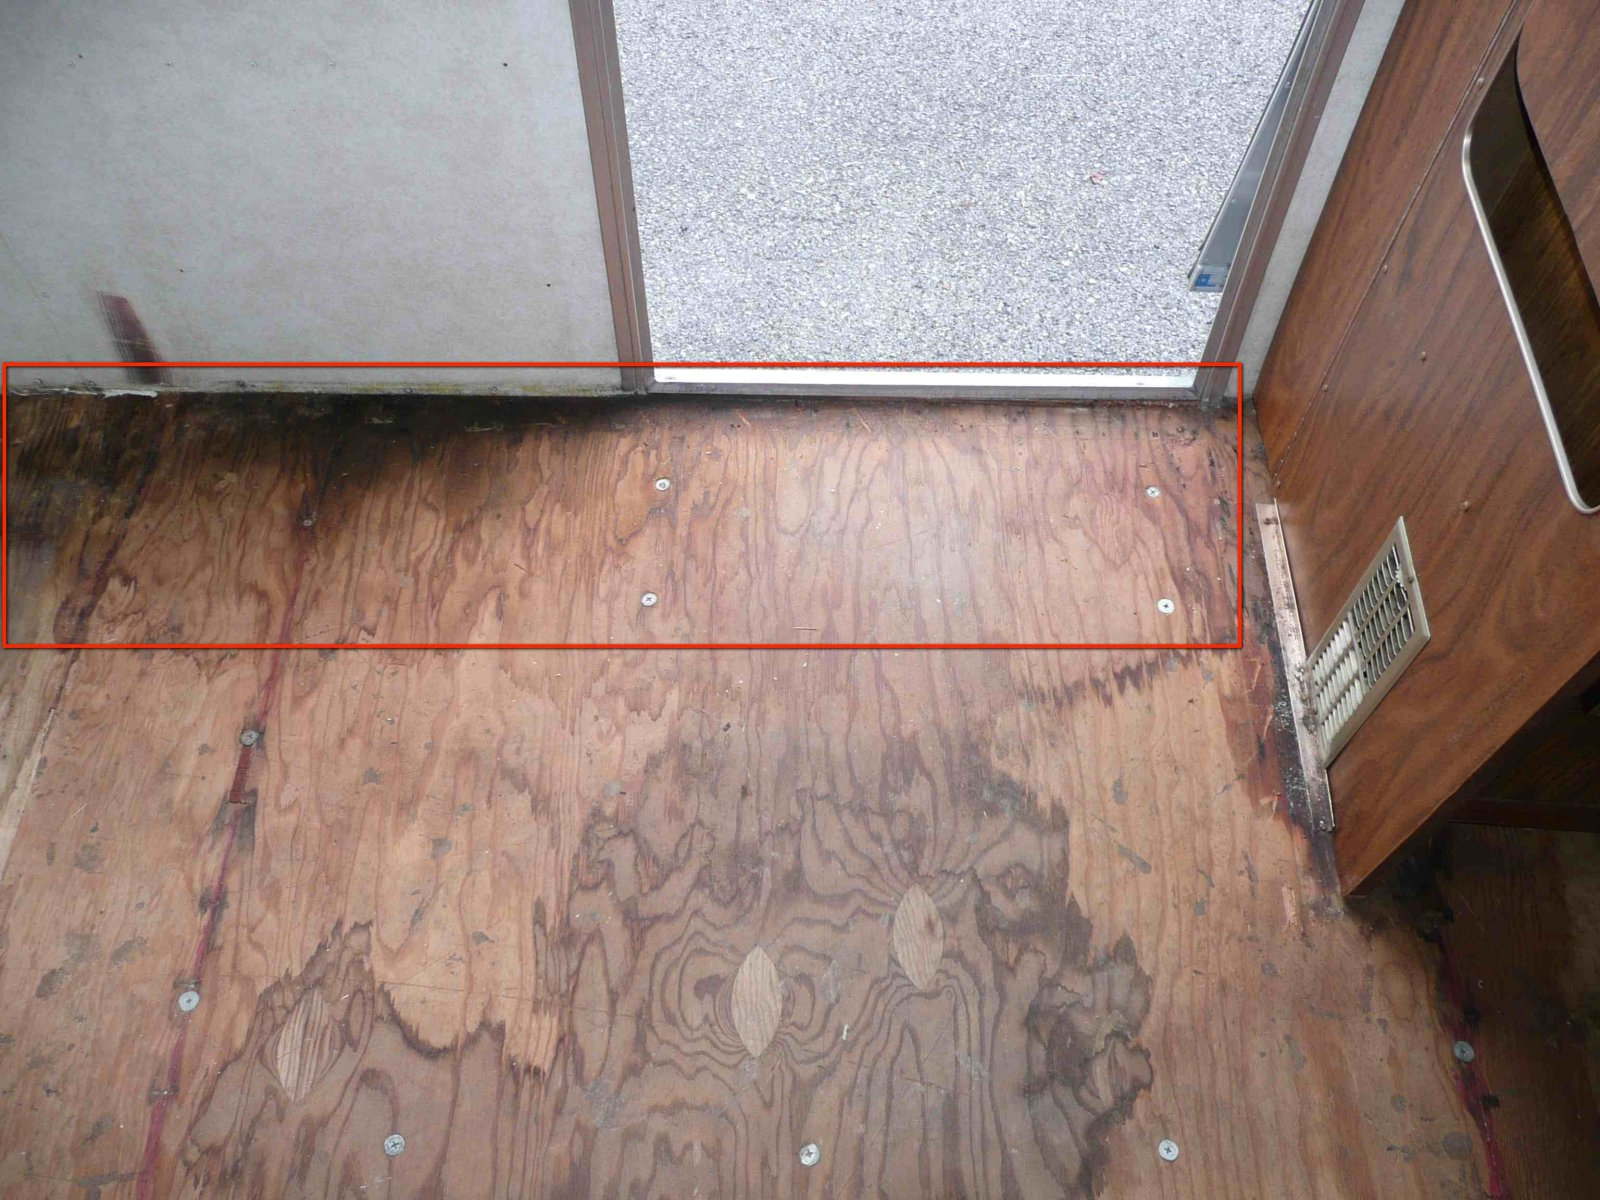 Click image for larger version  Name:Floor Rot JPEG.jpg Views:83 Size:347.1 KB ID:88239